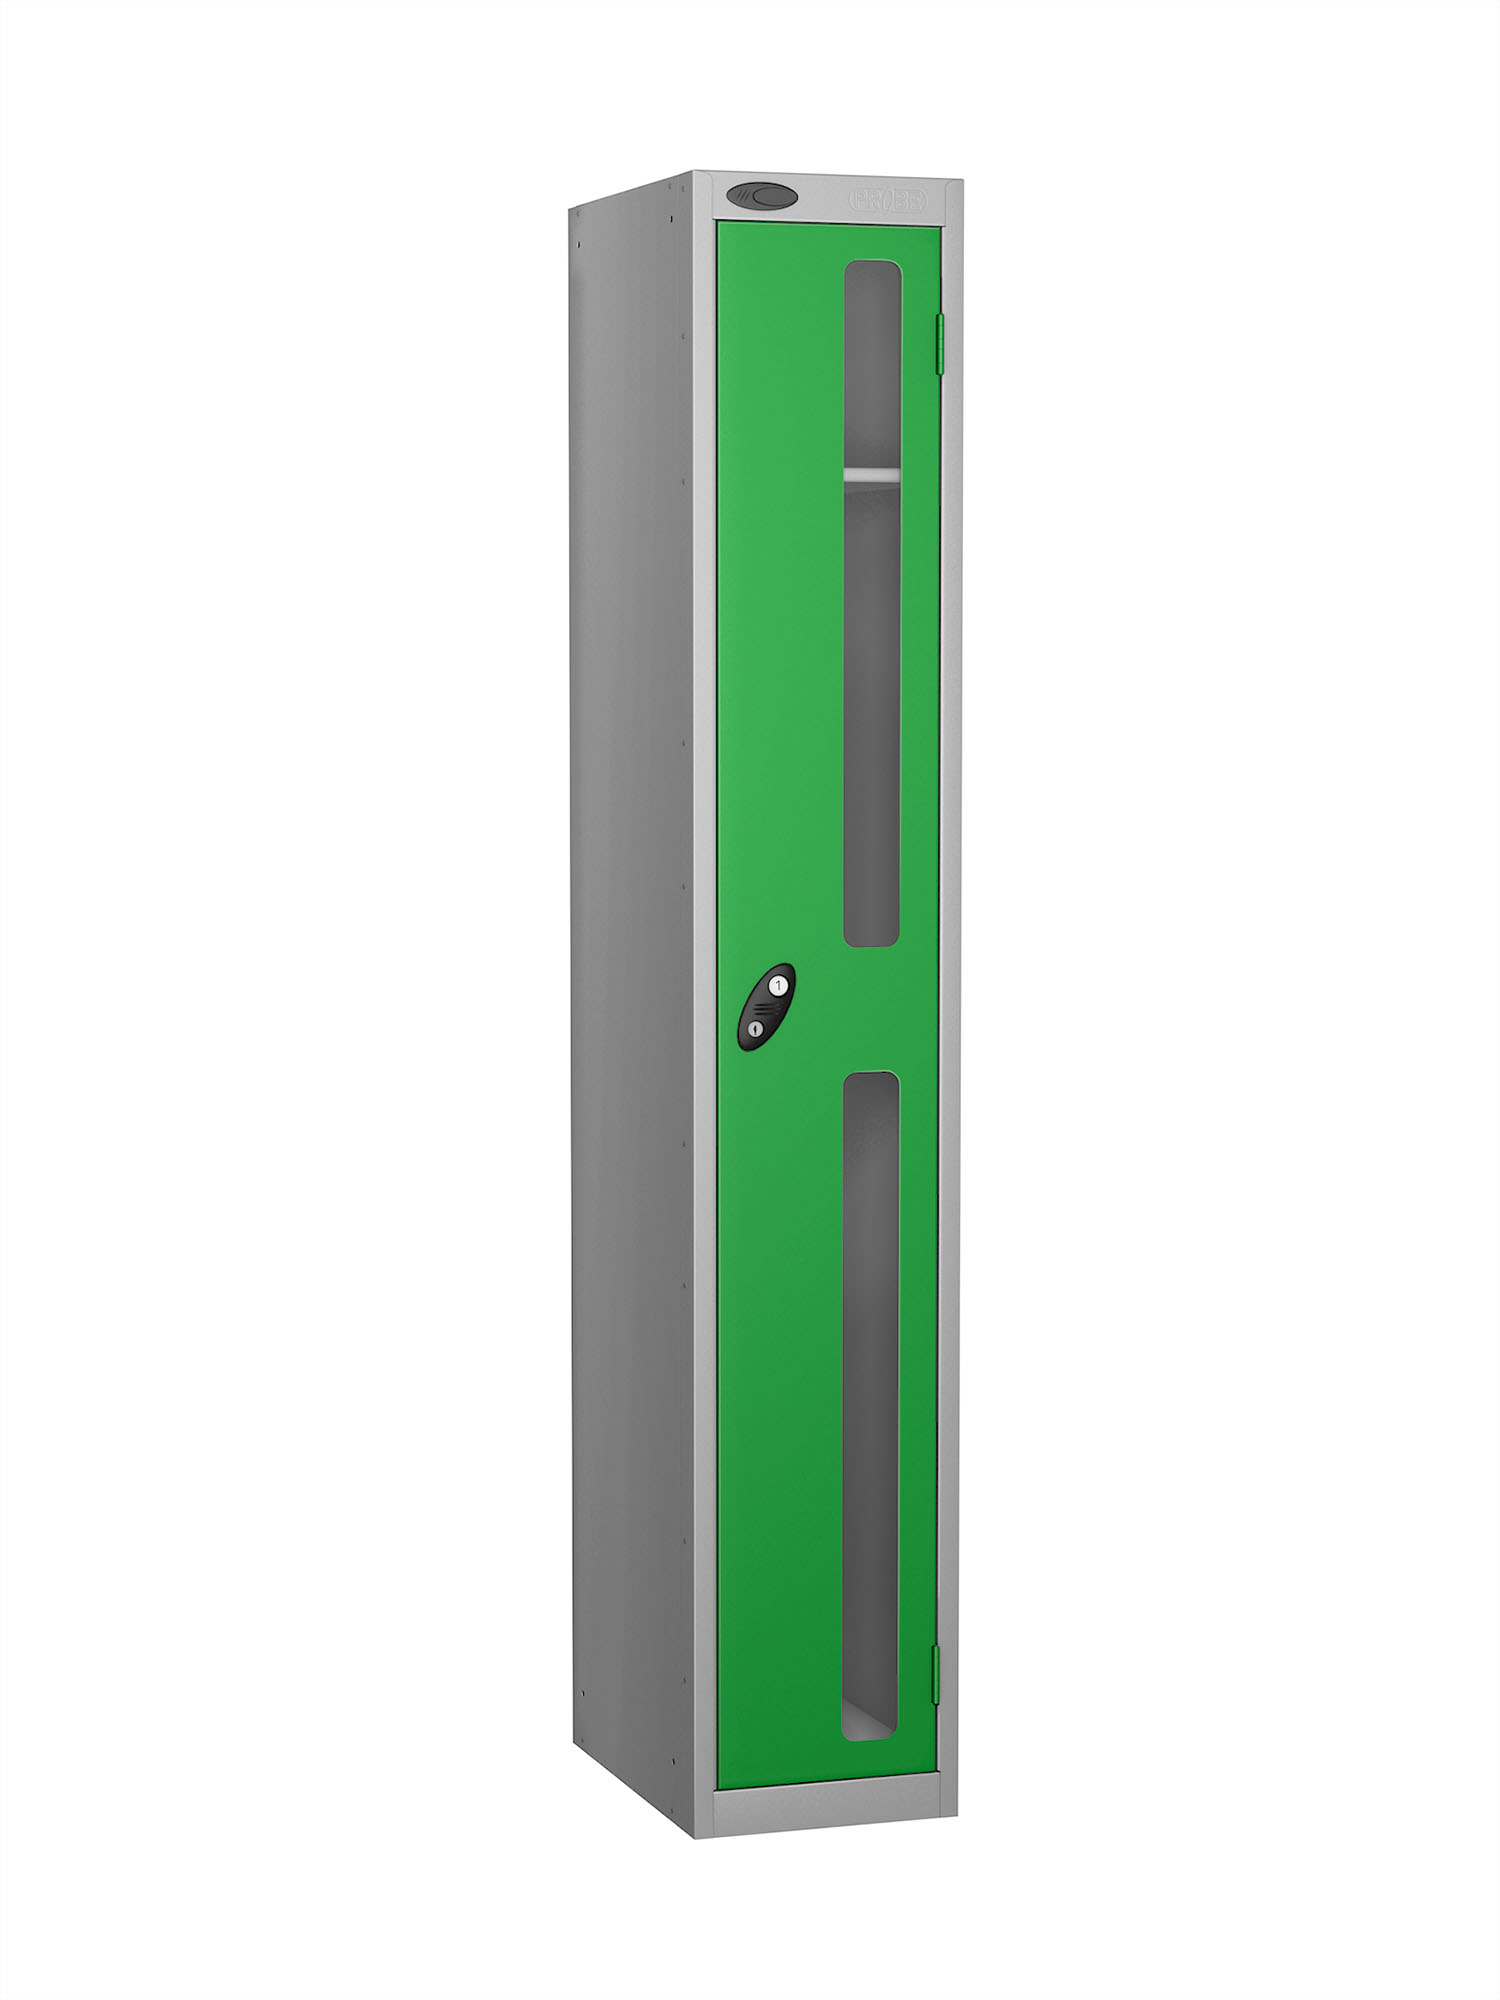 Probe 1 door vision panel anti-stock theft locker green